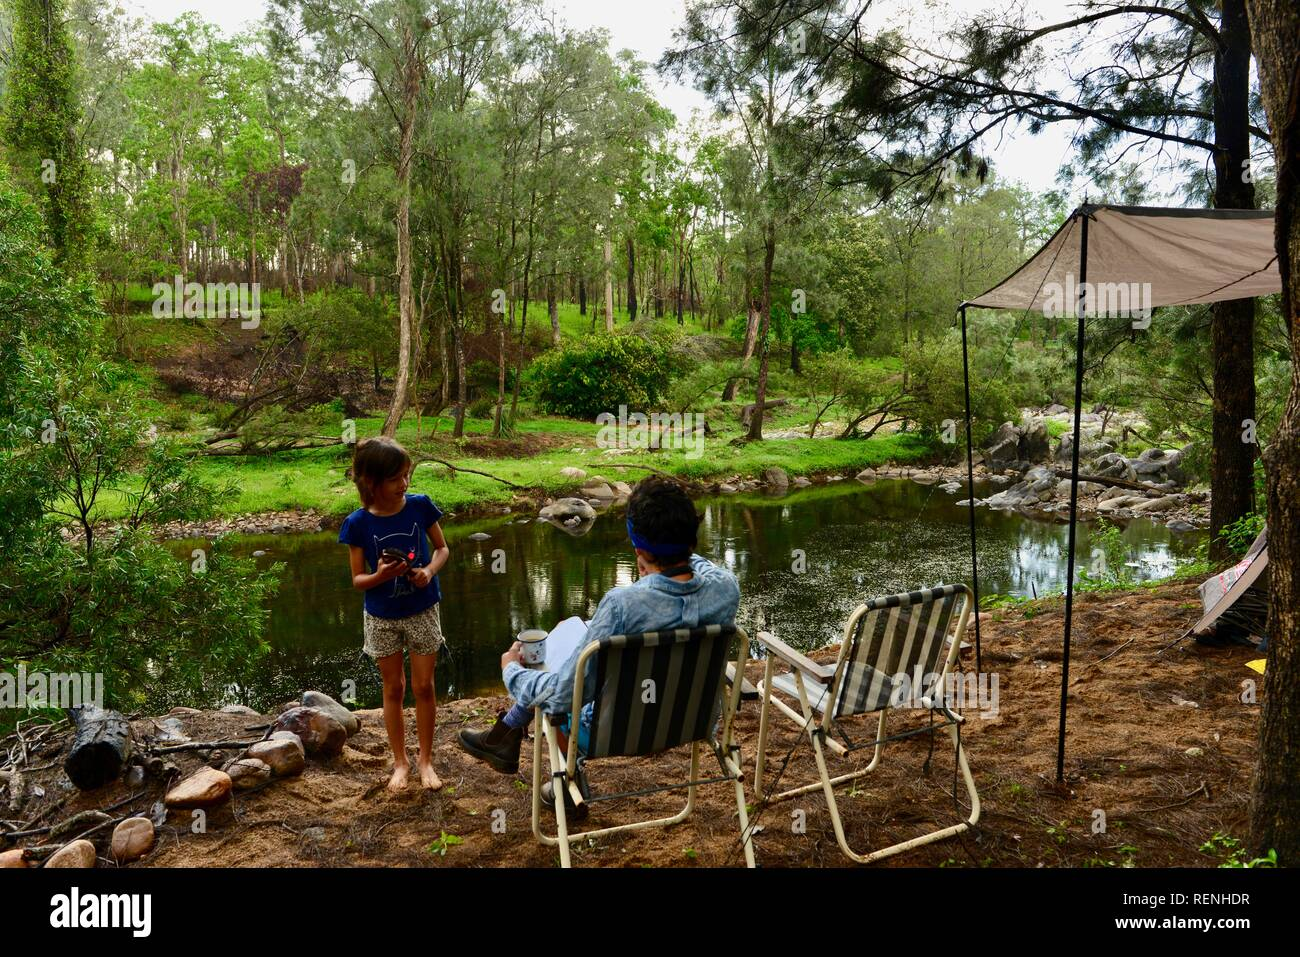 Camping next to Teemburra Creek at Captain's crossing, Mia Mia State Forest, Queensland, Australia Stock Photo